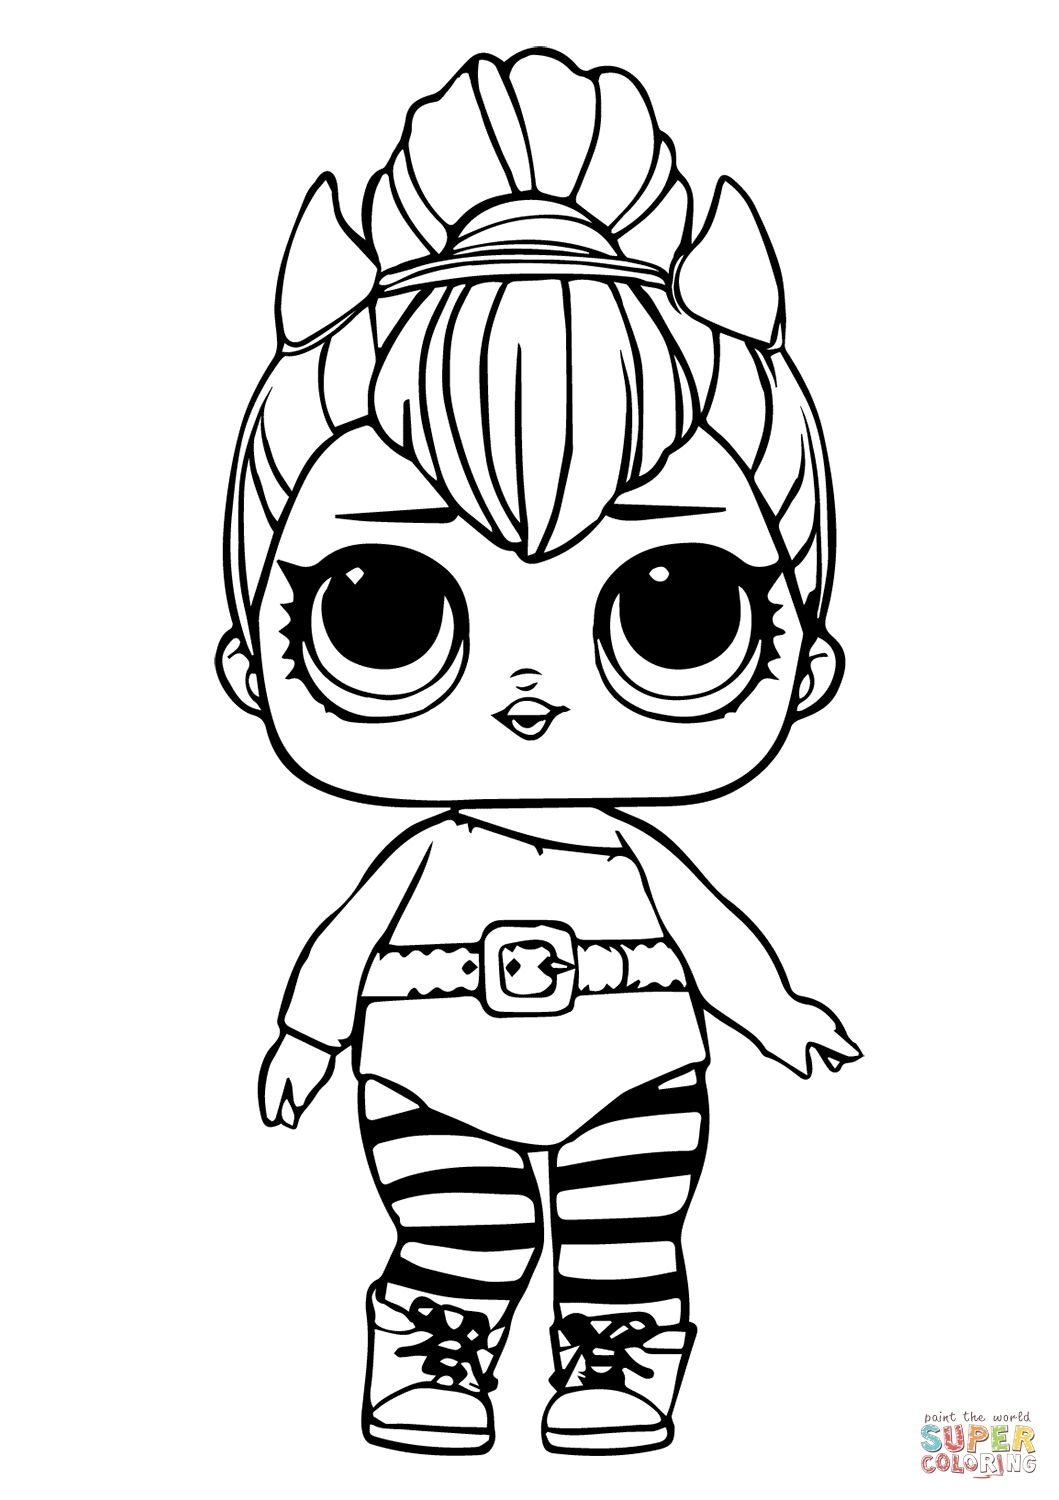 Lol Coloring Page Spice Lol Coloring Page Spice Lol Coloring Pages Sugar And Spice Lol D Unicorn Coloring Pages Cute Coloring Pages Coloring Pages For Girls